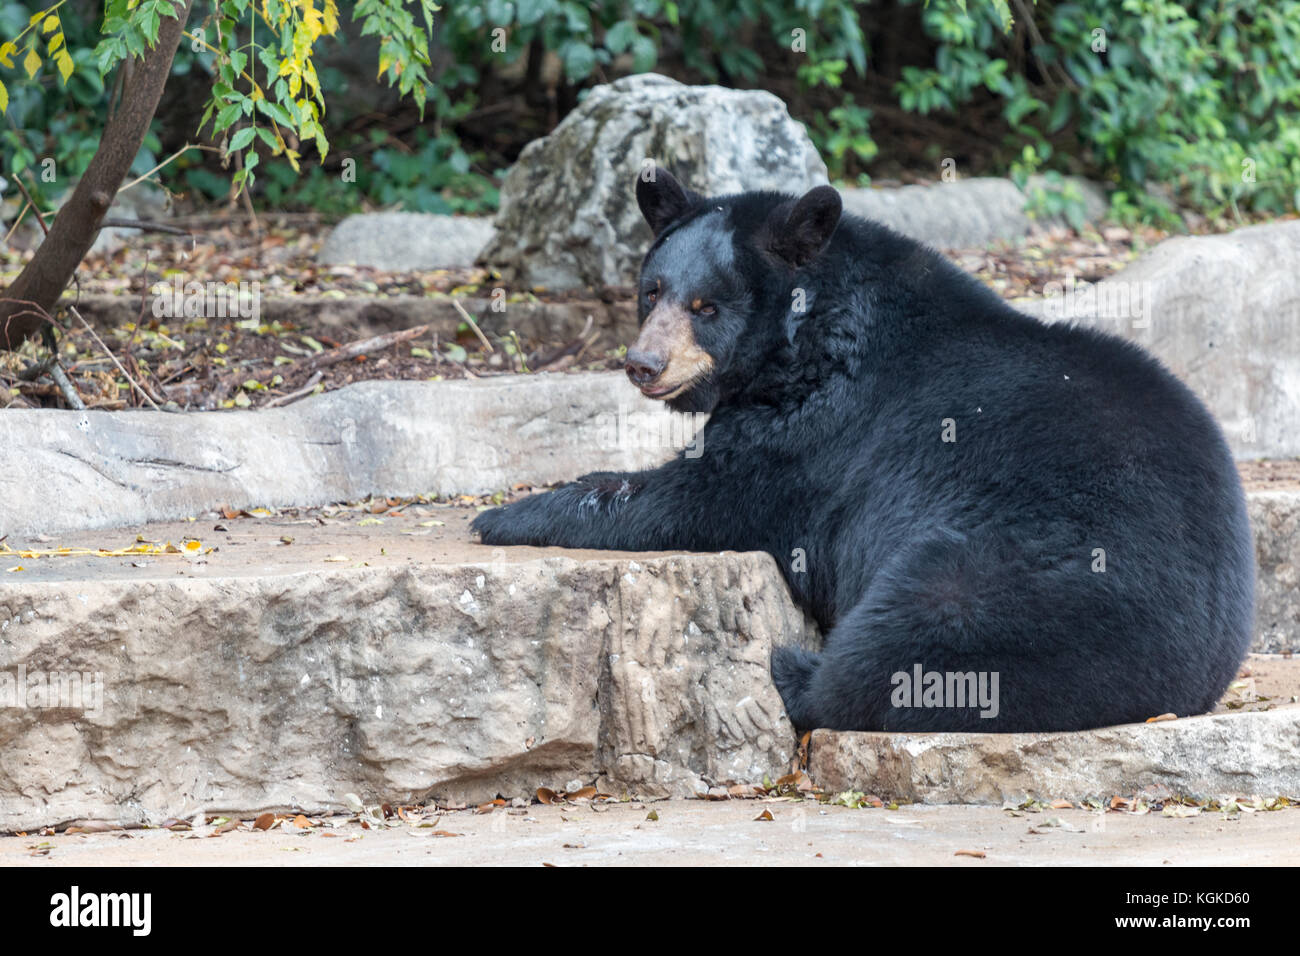 American Black Bear Sitting on Ground and Looking at Camera - Stock Image